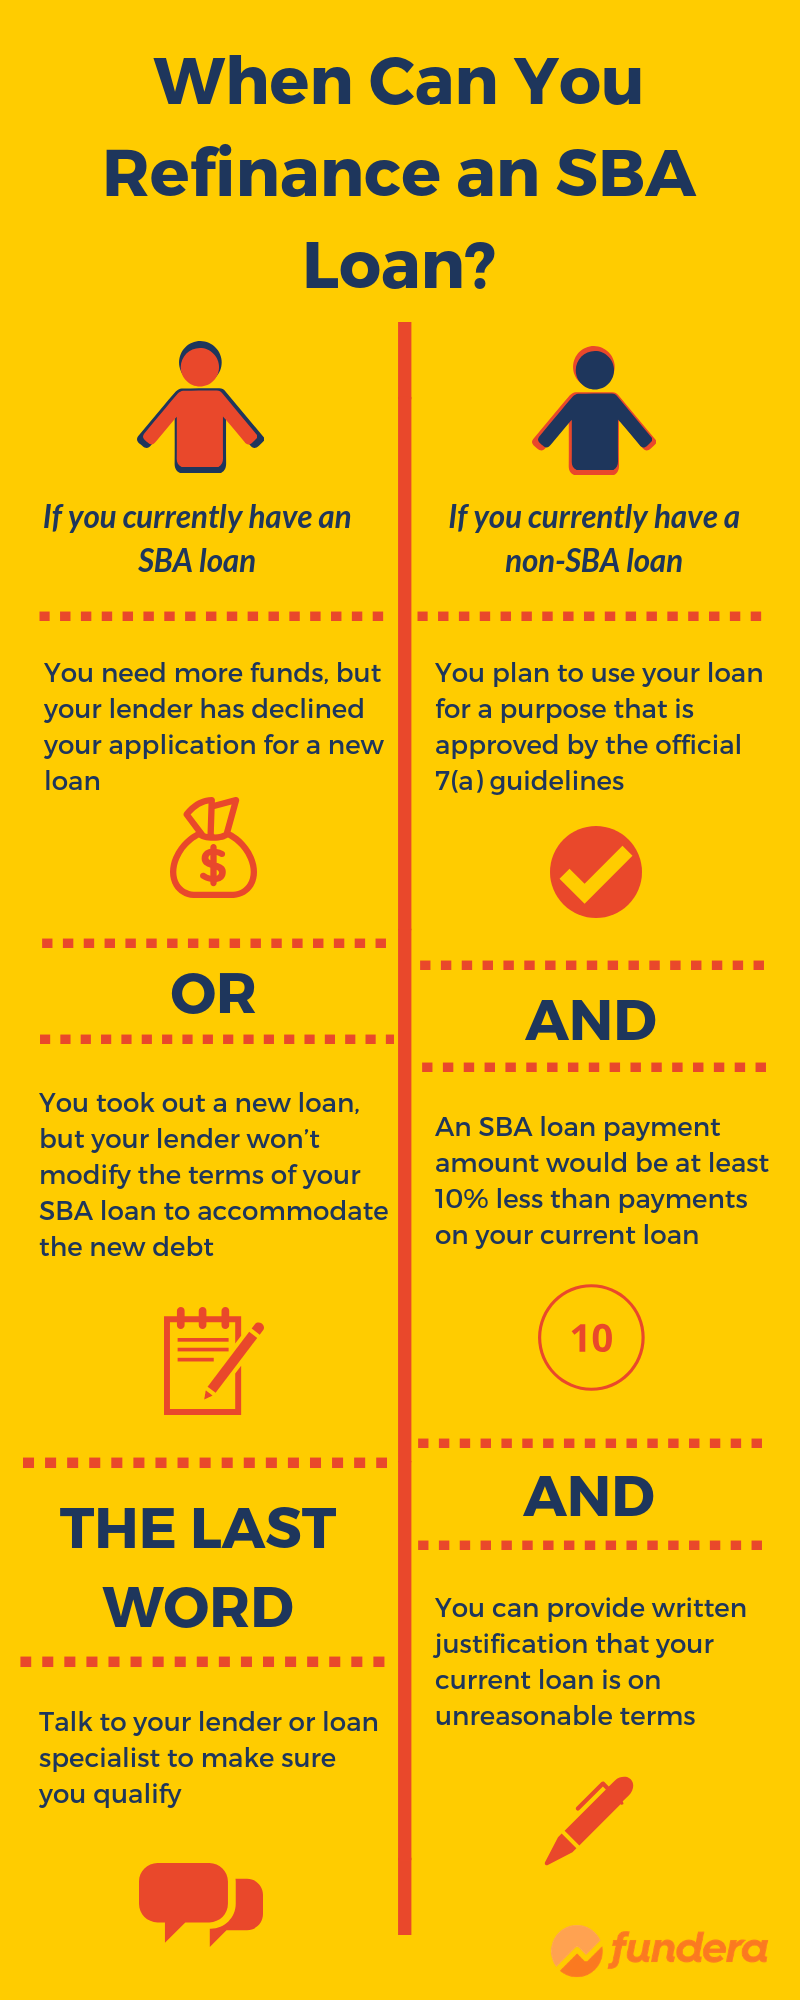 refinance debt with an sba 7a loan